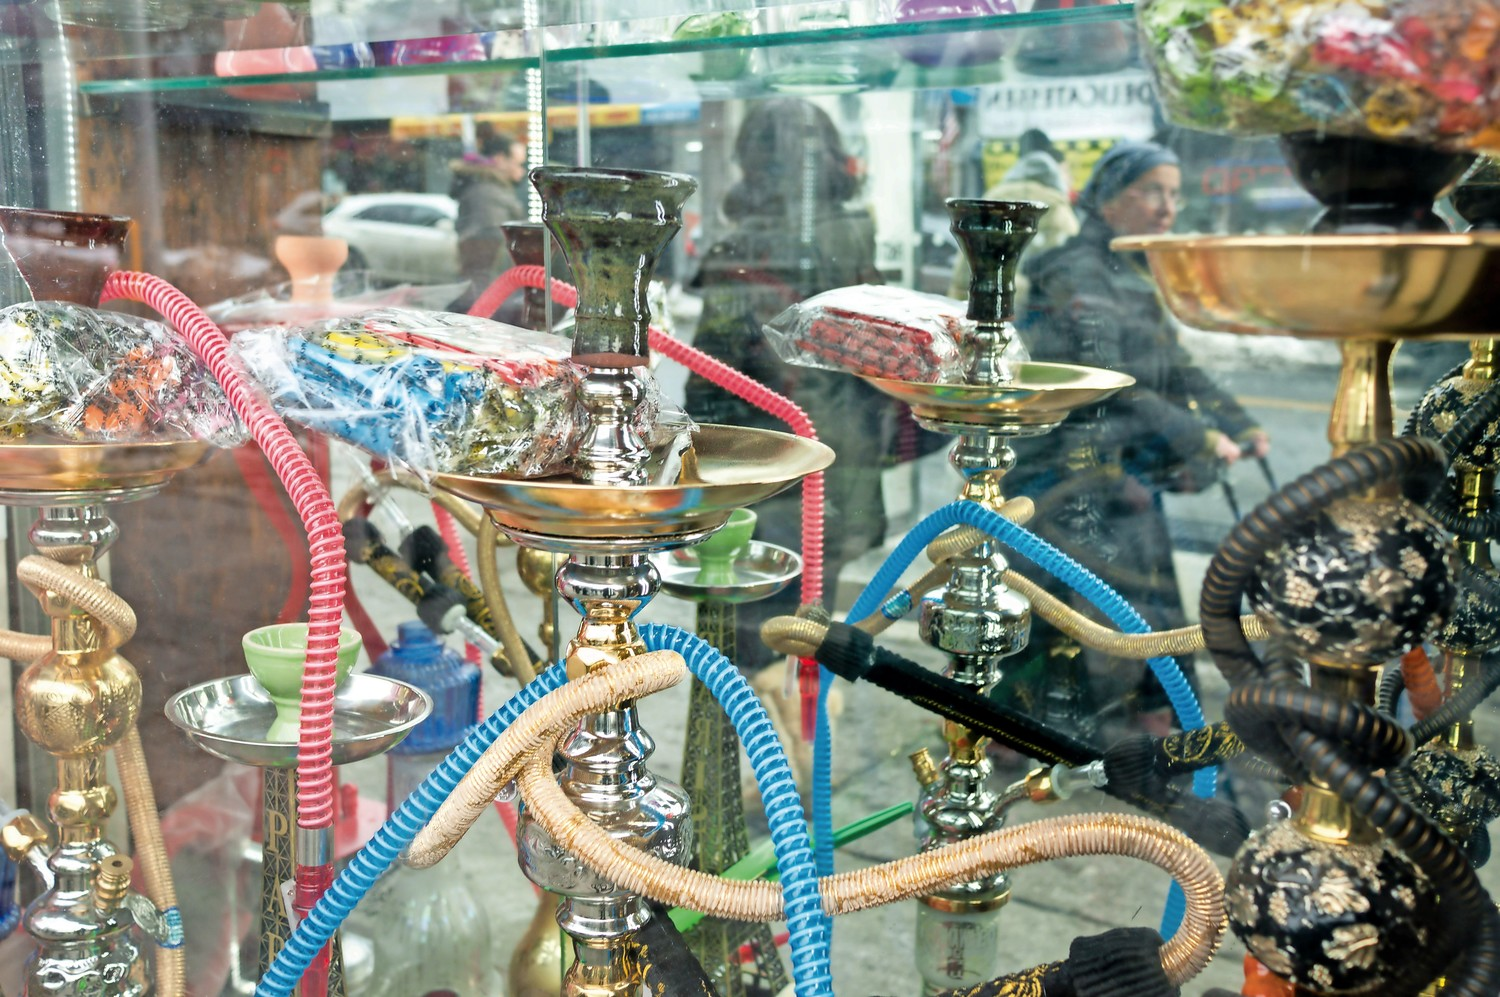 Hookah is a popular alternative to cigarettes, but it presents many of the same health risks. Tobacco for hookah pipes is often flavored. In a video by the American Thoracic Society, children in a blind smell test had a hard time telling the difference between candy and flavored tobacco.